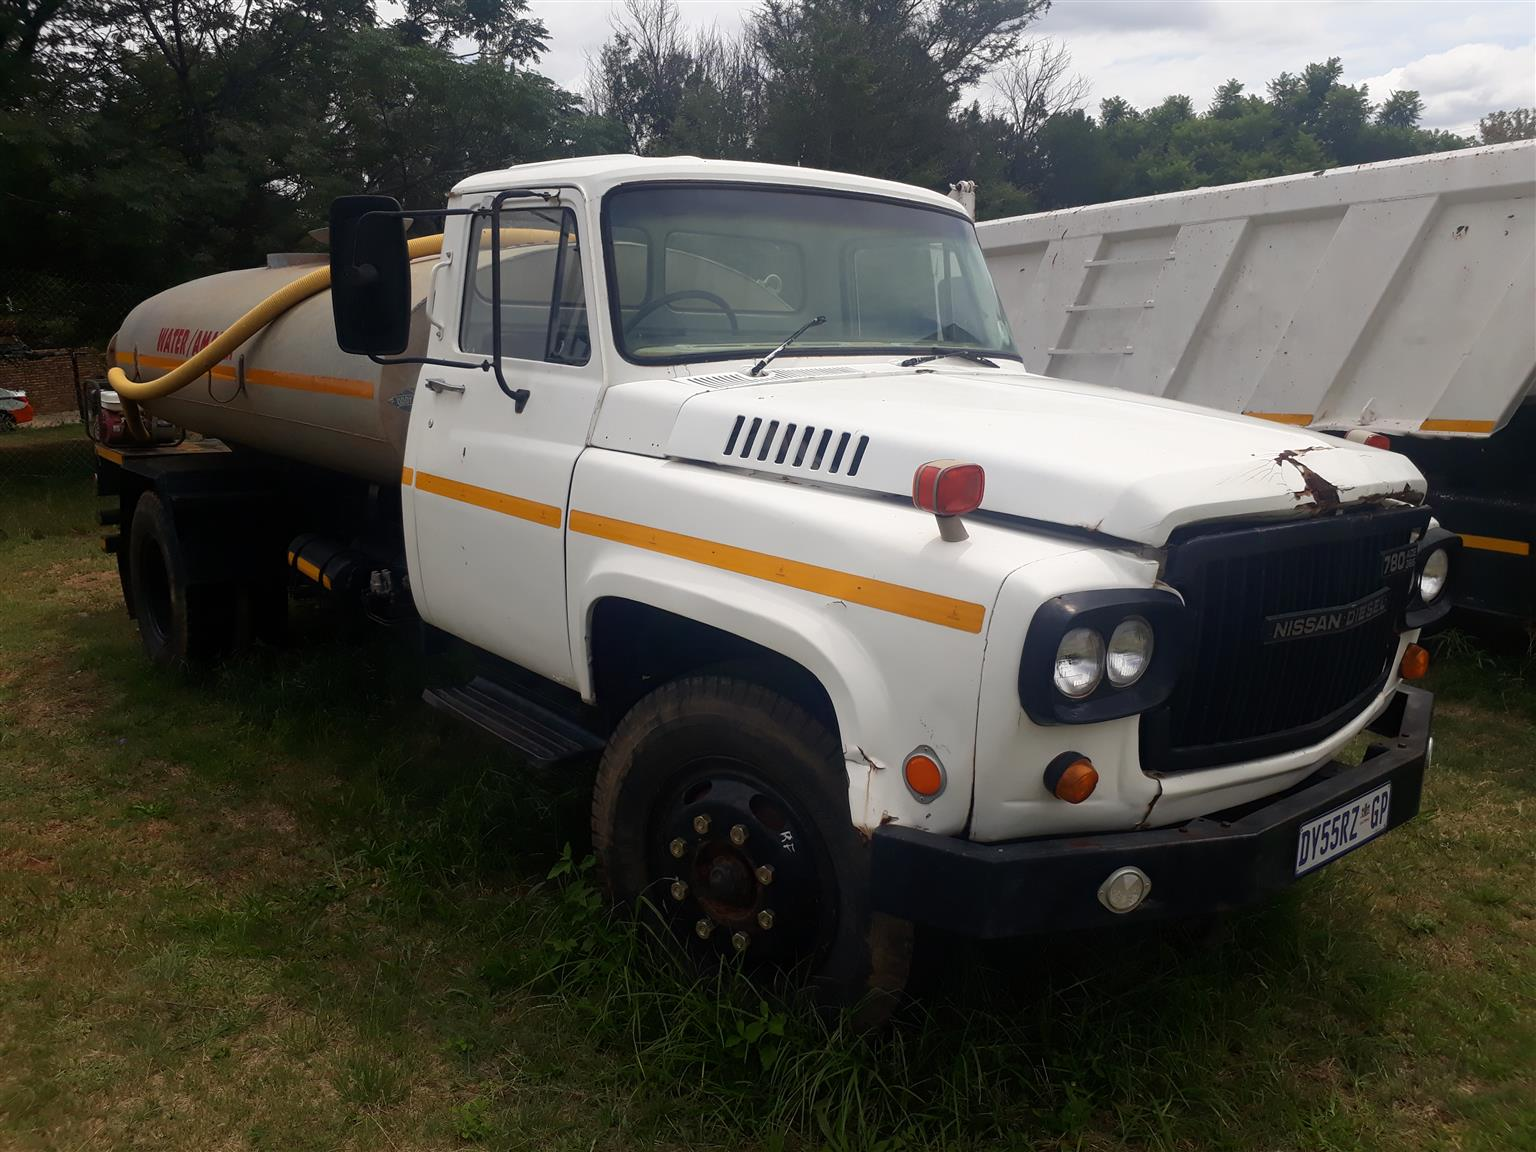 Nissan UG780 with 8000L water tanker